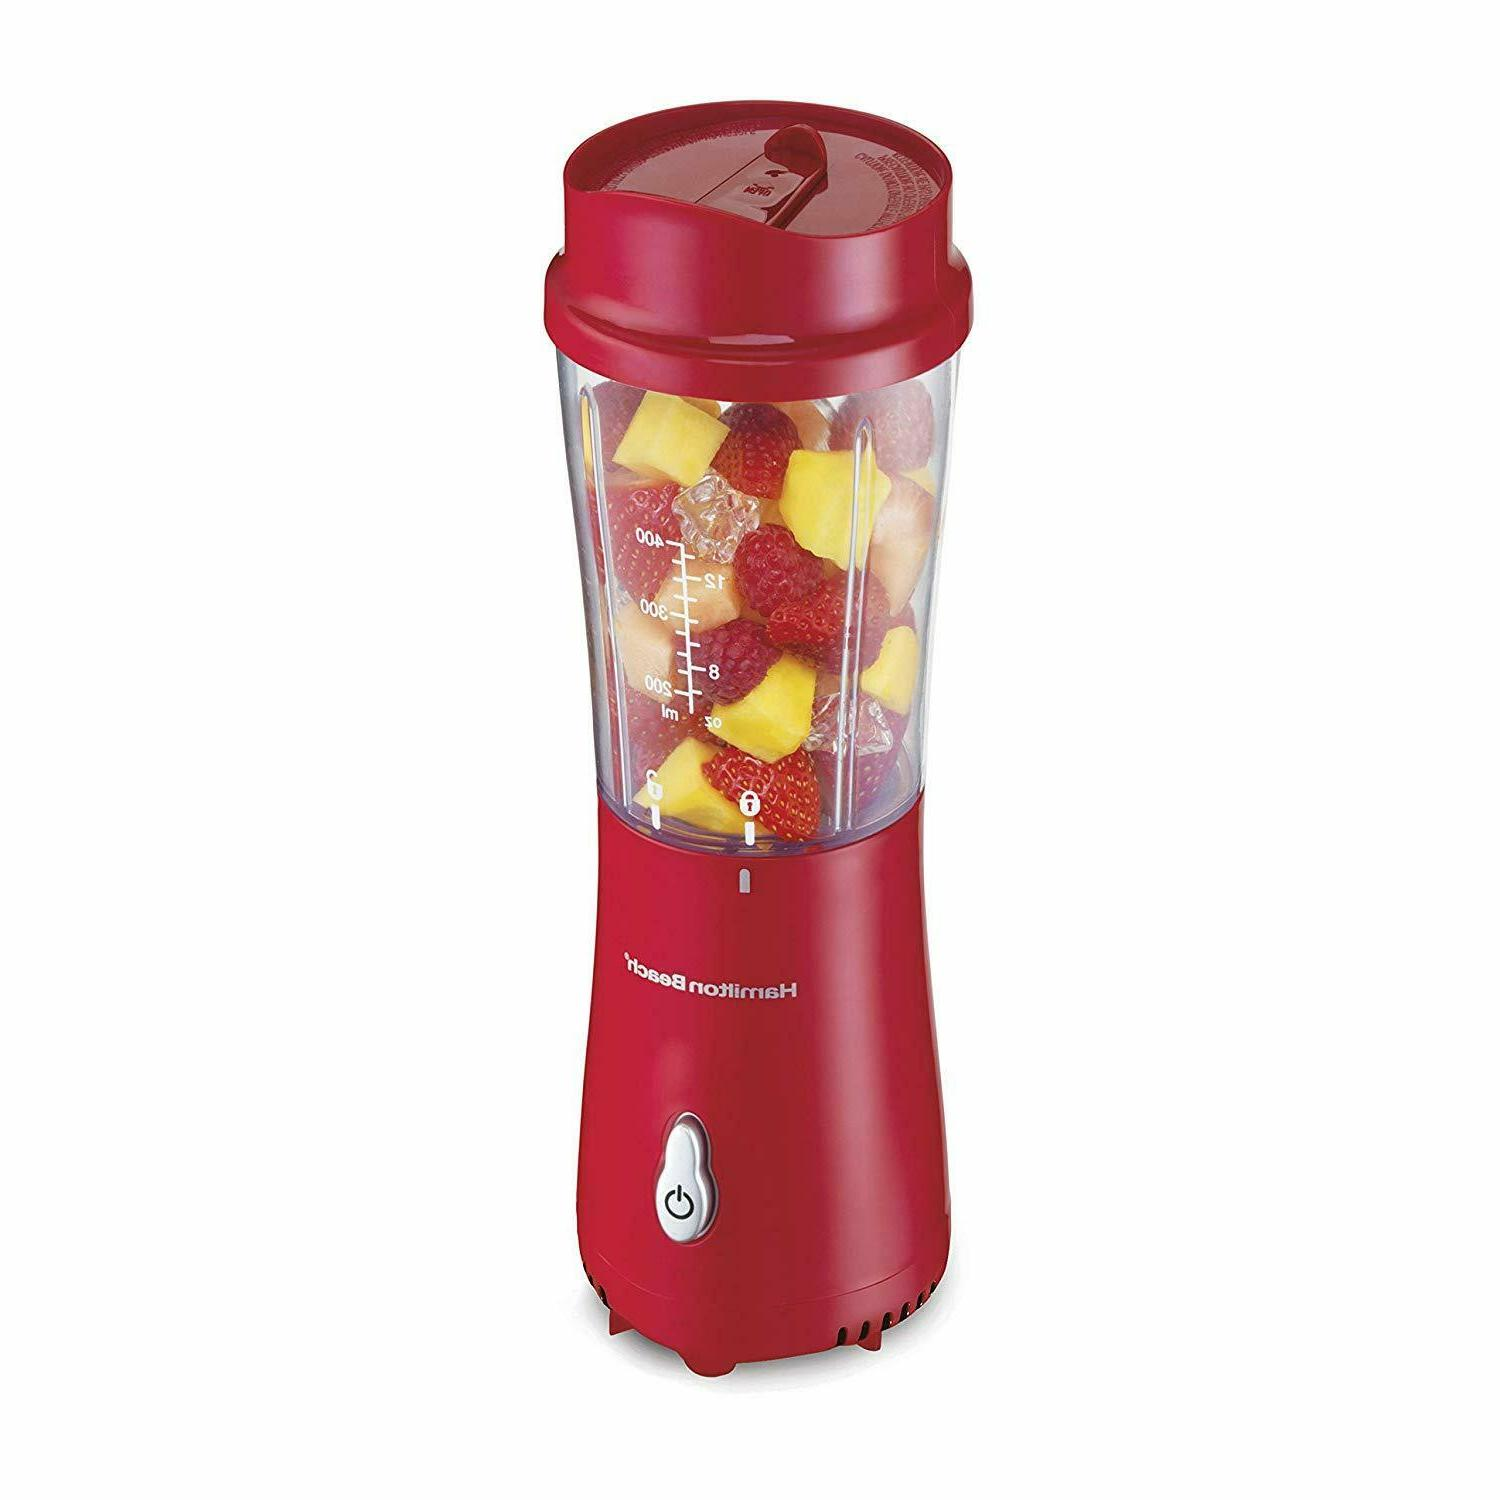 Portable Blender Electric Juicer Ice Crush Fruit Mixer Cup M